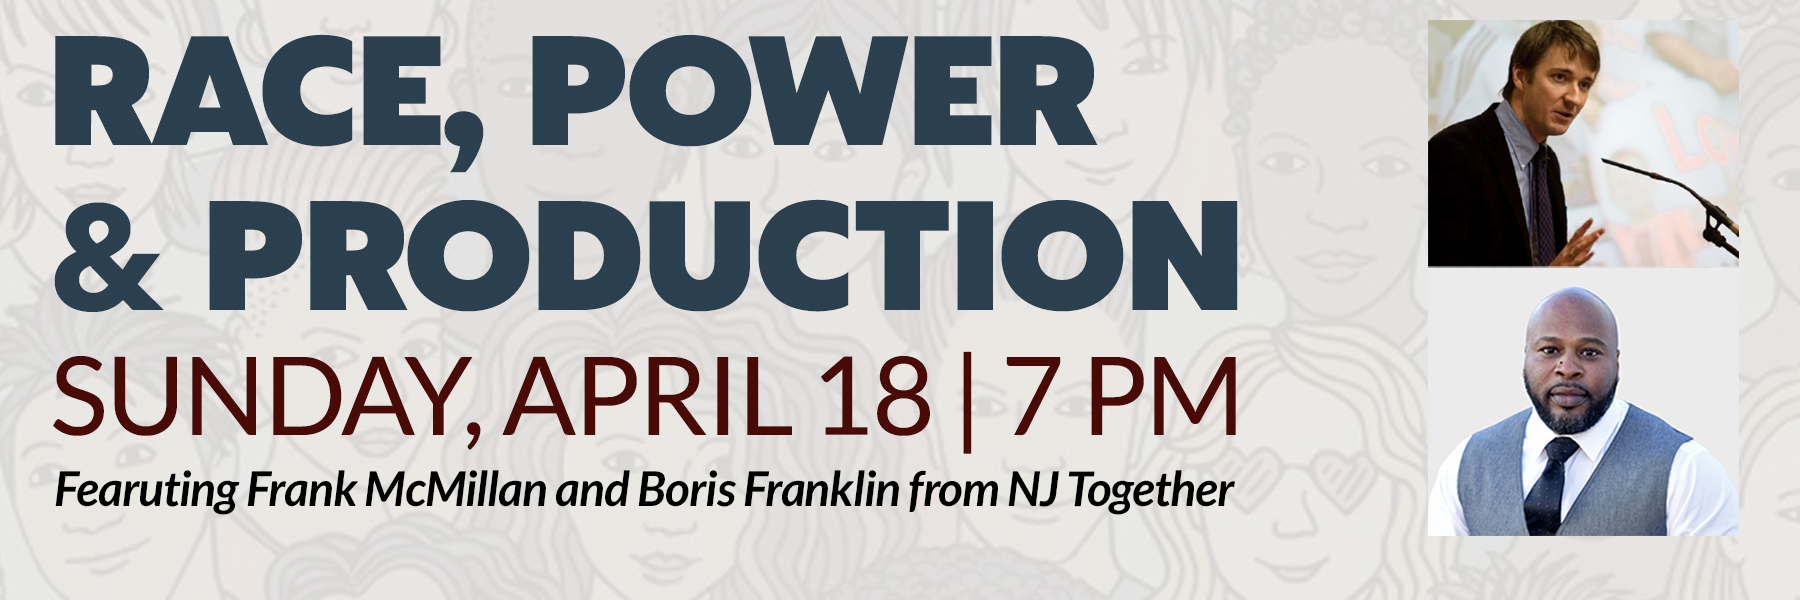 "<a href=""https://www.barnerttemple.org/event/arc-campaign-race-power--production.html""